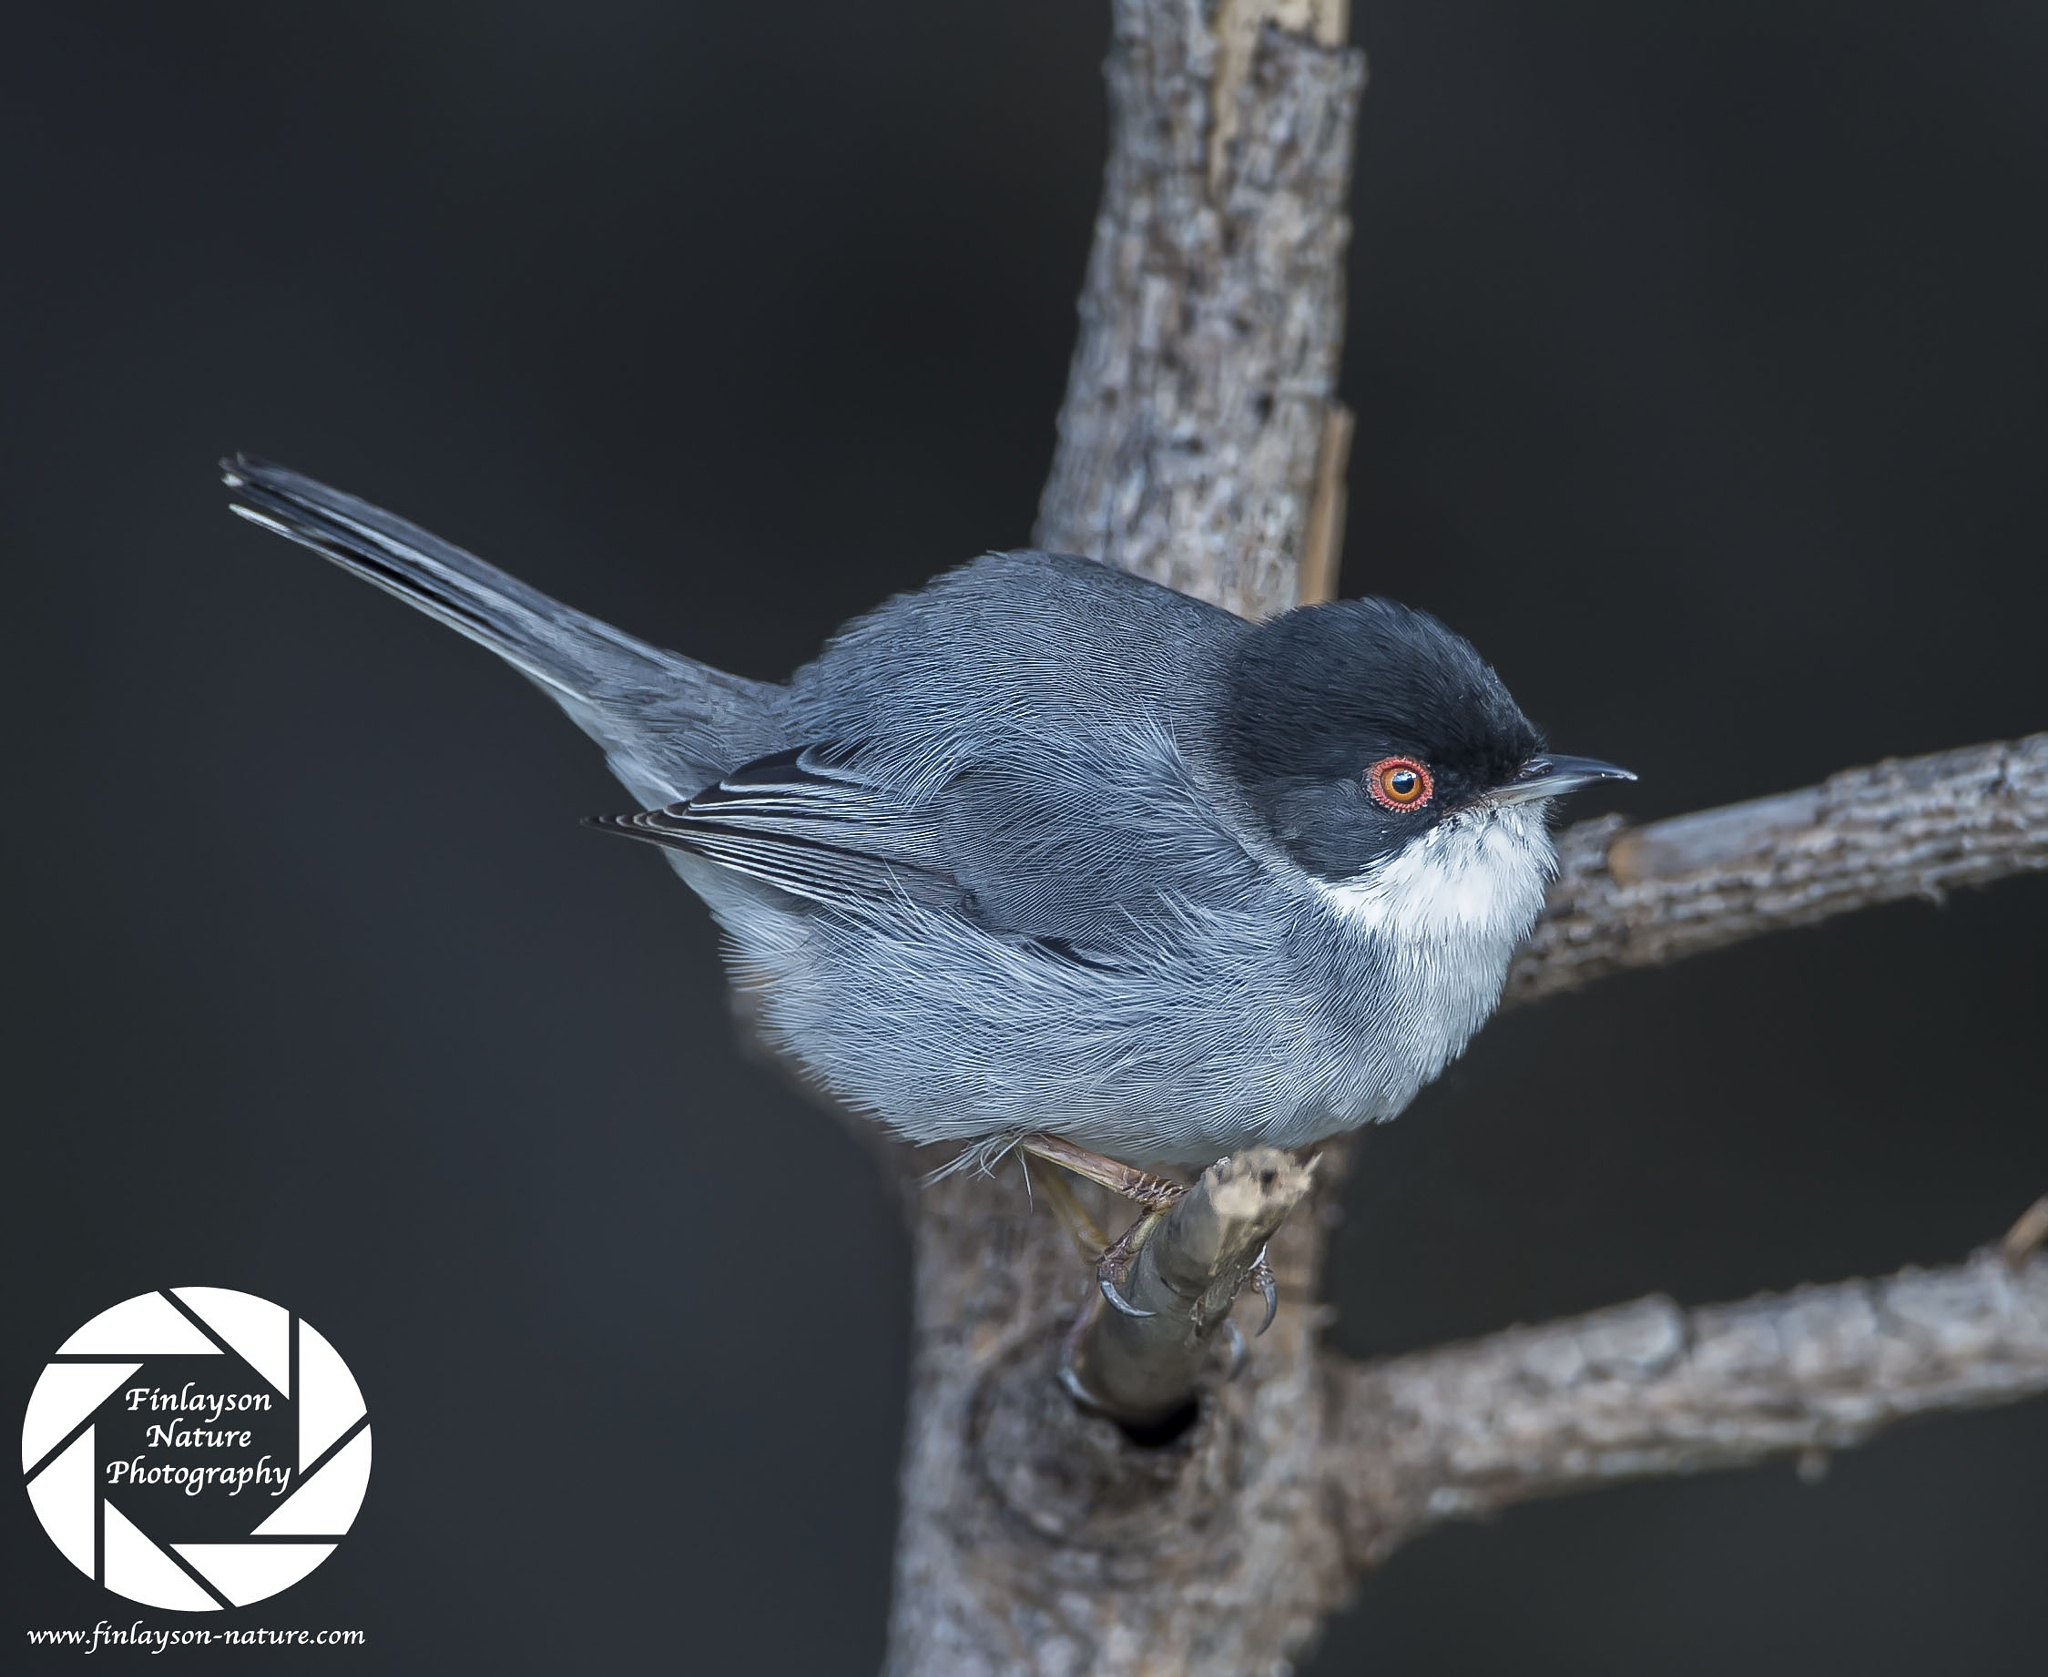 Male Sardinian Warbler by Clive Finlayson